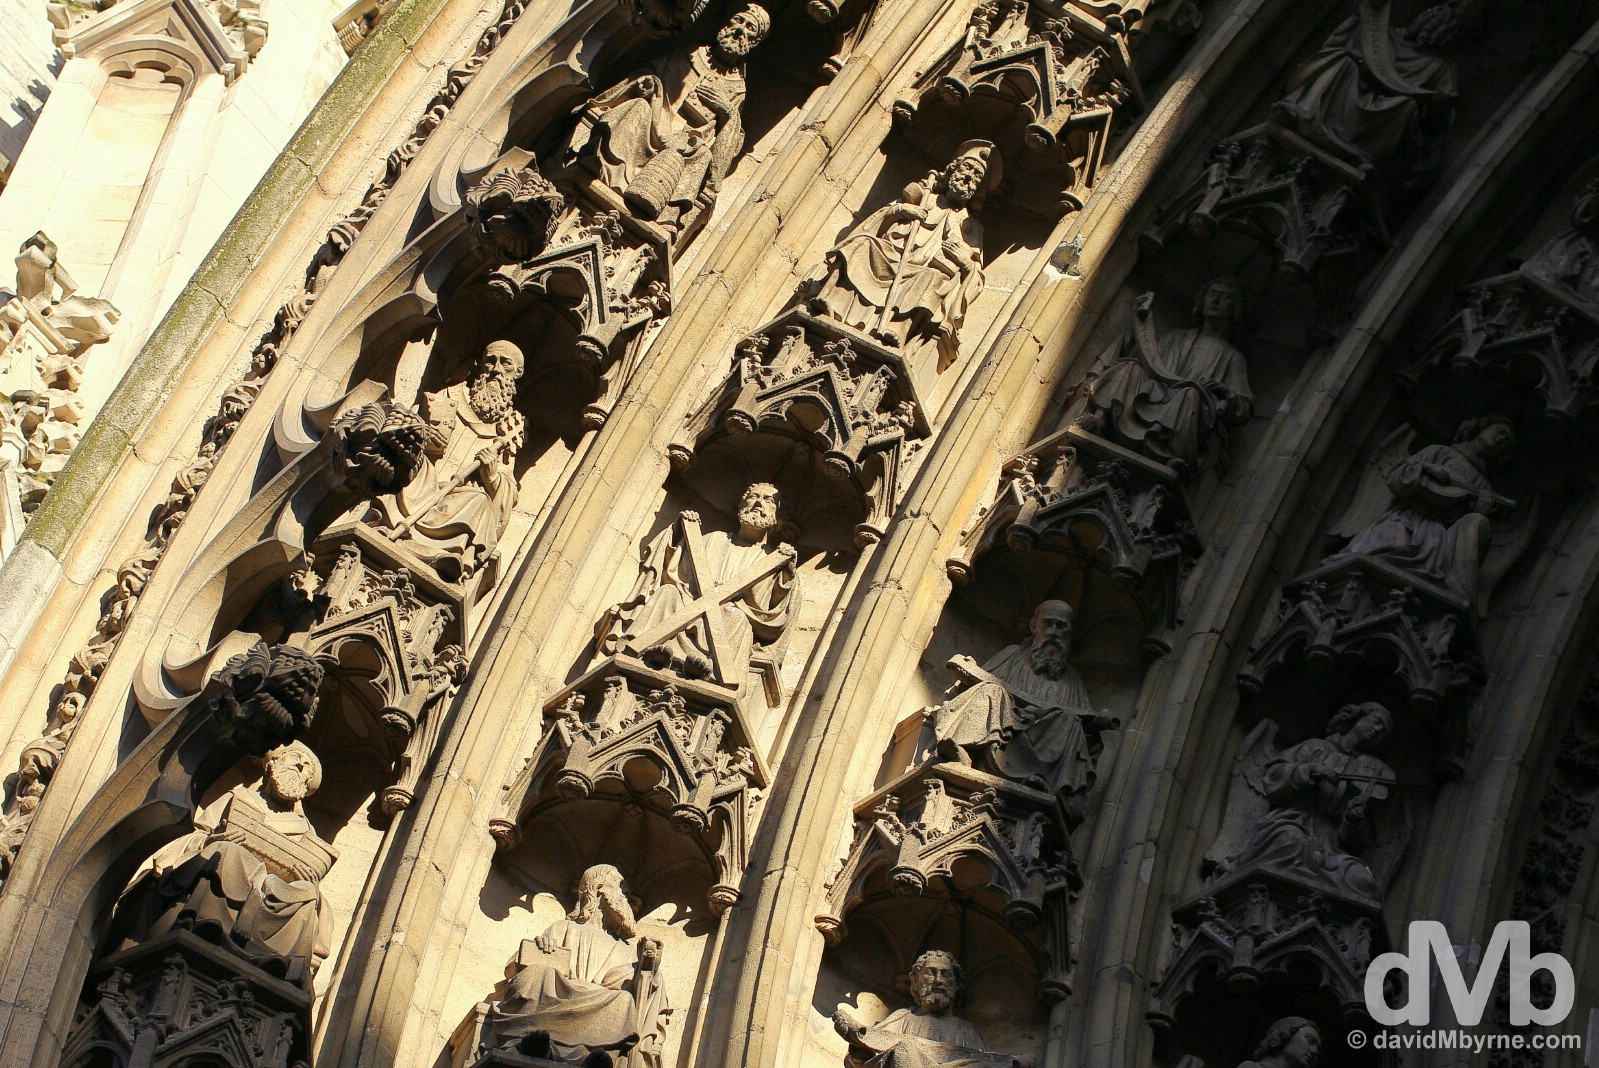 Detail above the main entrance to the Onze Lieve Vrouwekathedraal in Antwerp, Belgium. January 17, 2016.